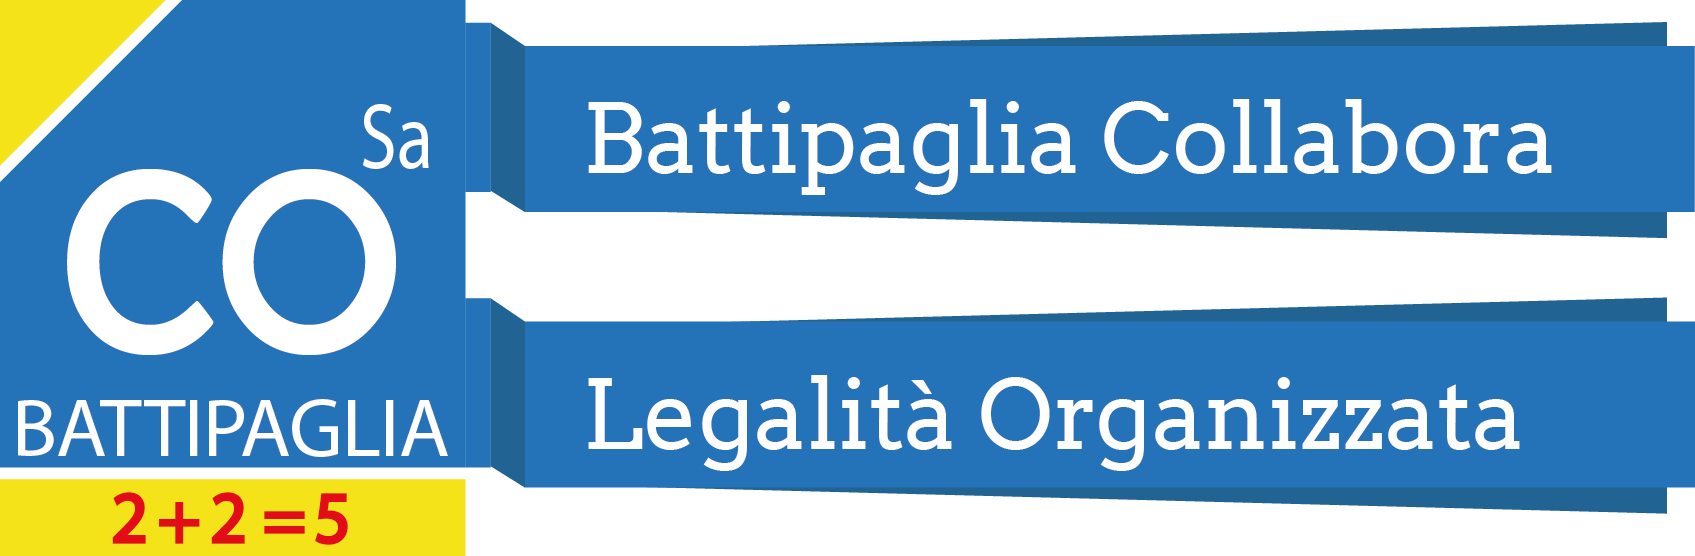 Battipaglia Collabora